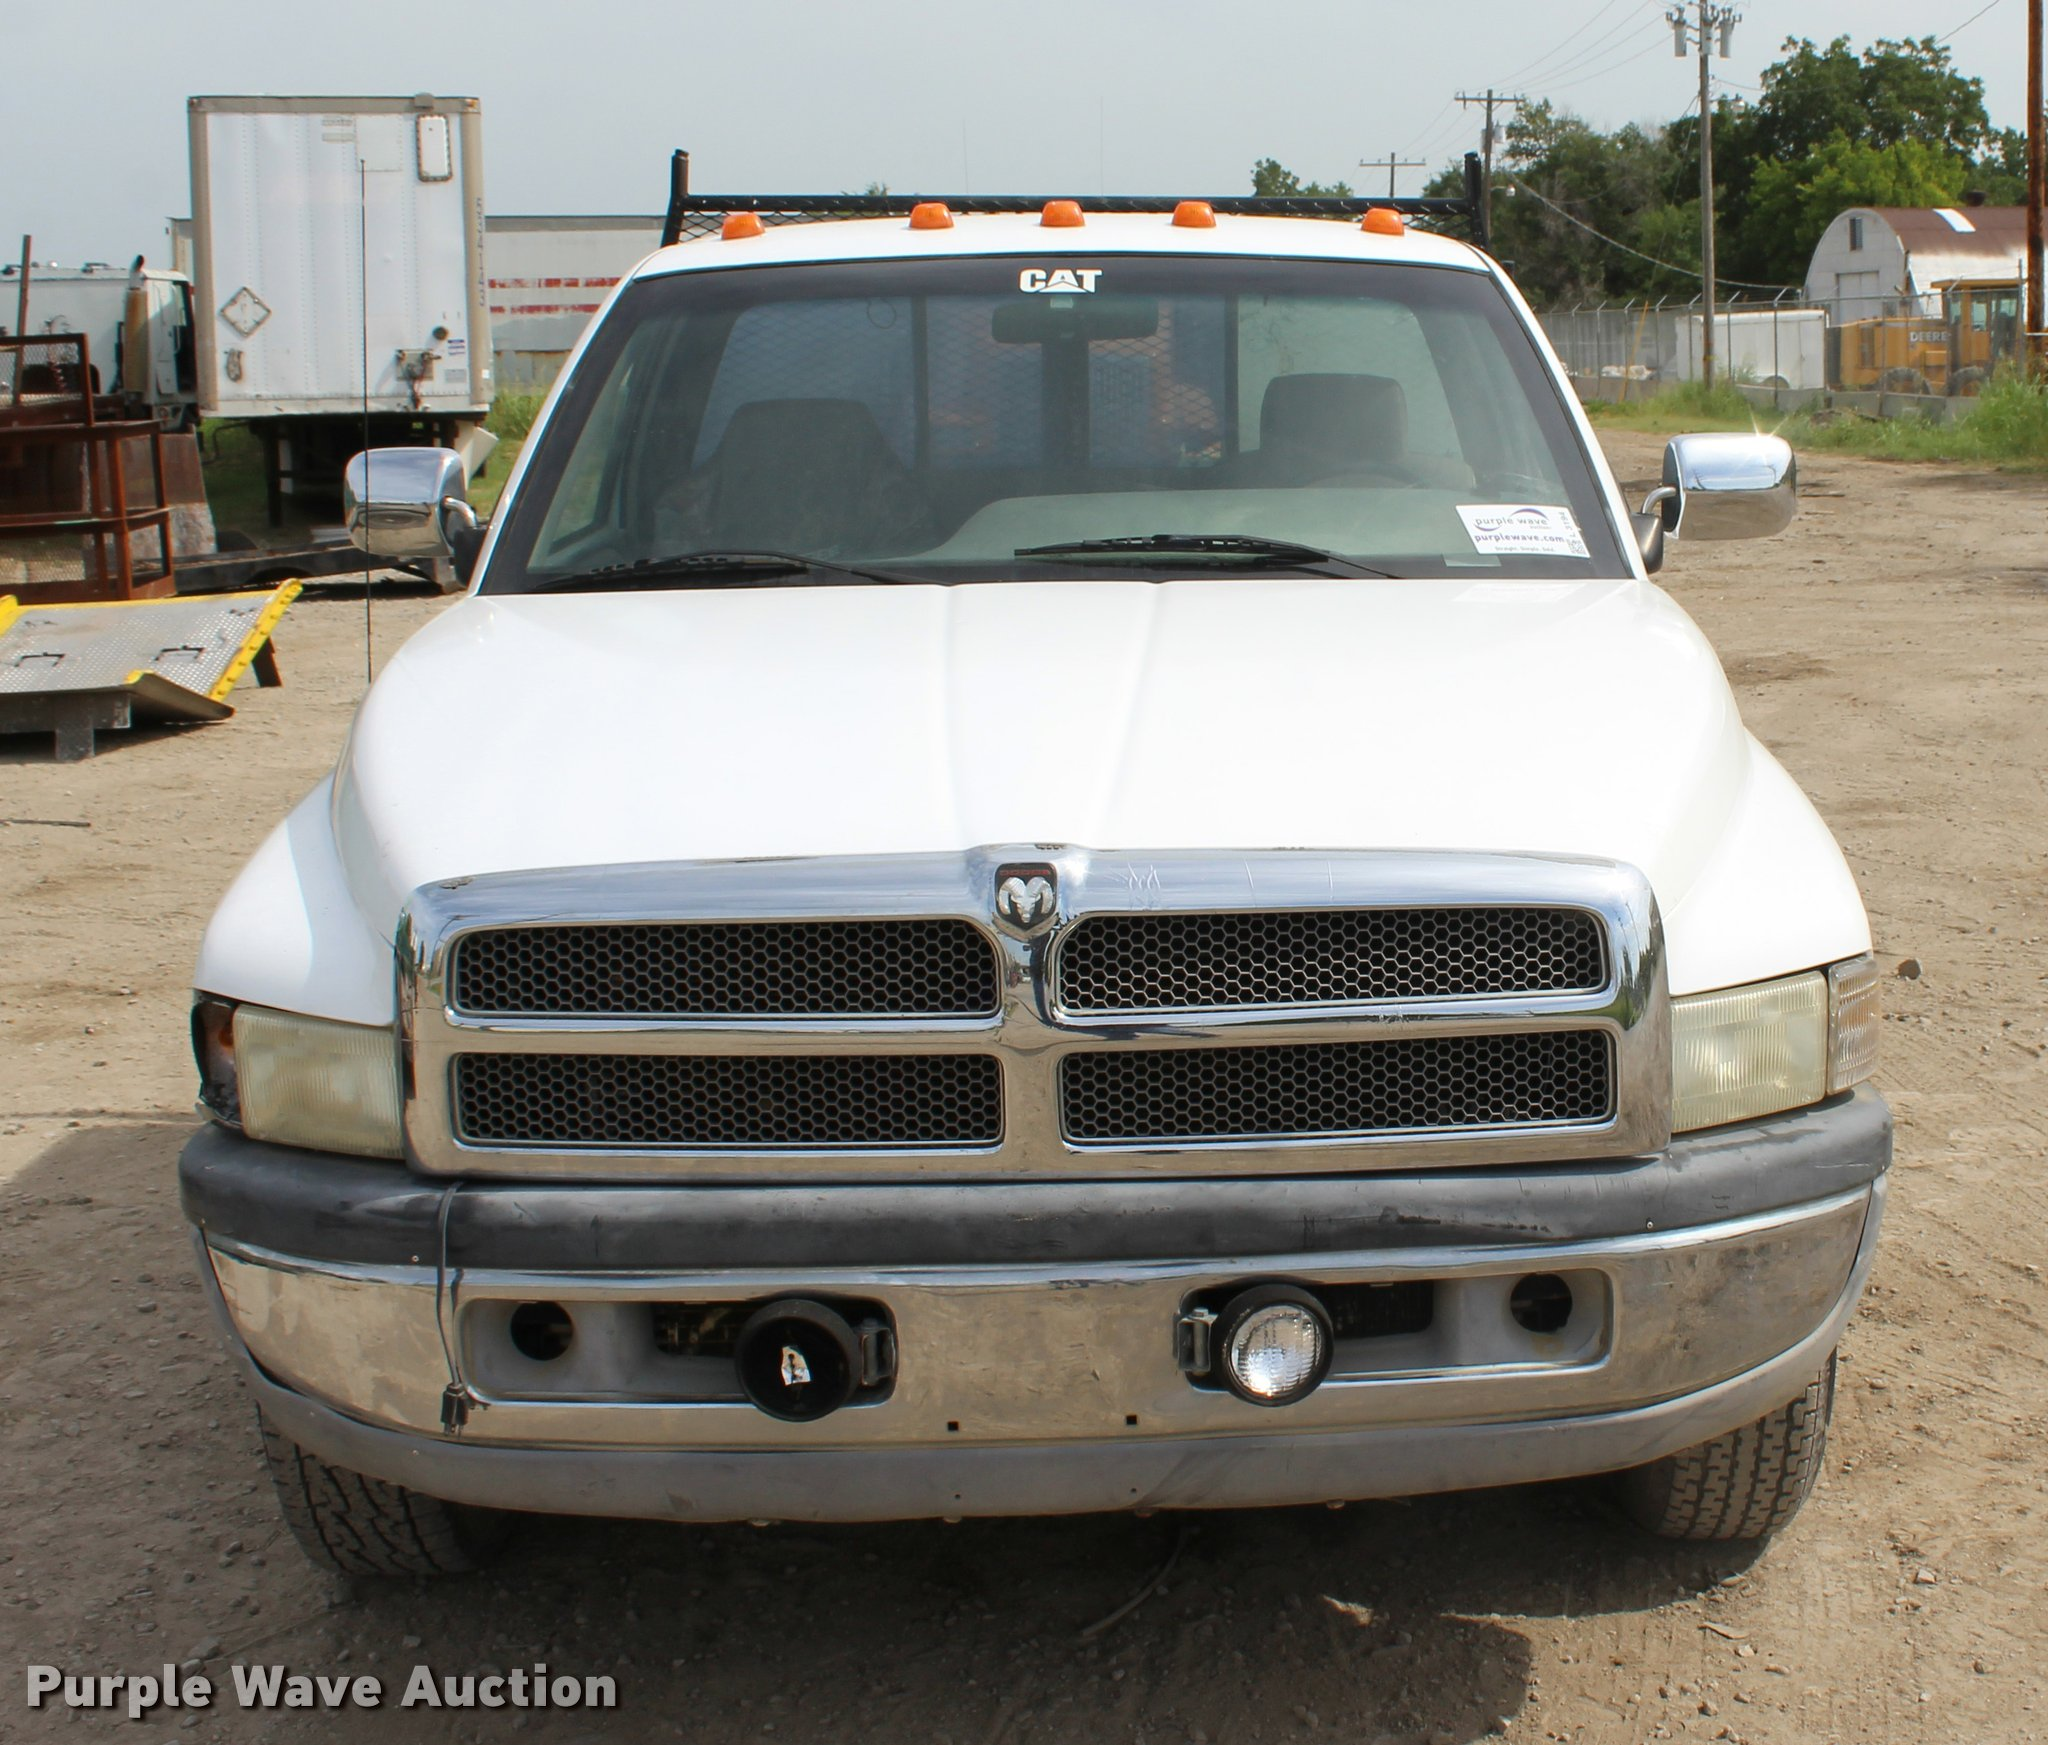 1994 Dodge Ram 2500 Flatbed Pickup Truck Item L3194 Sold Full Size In New Window